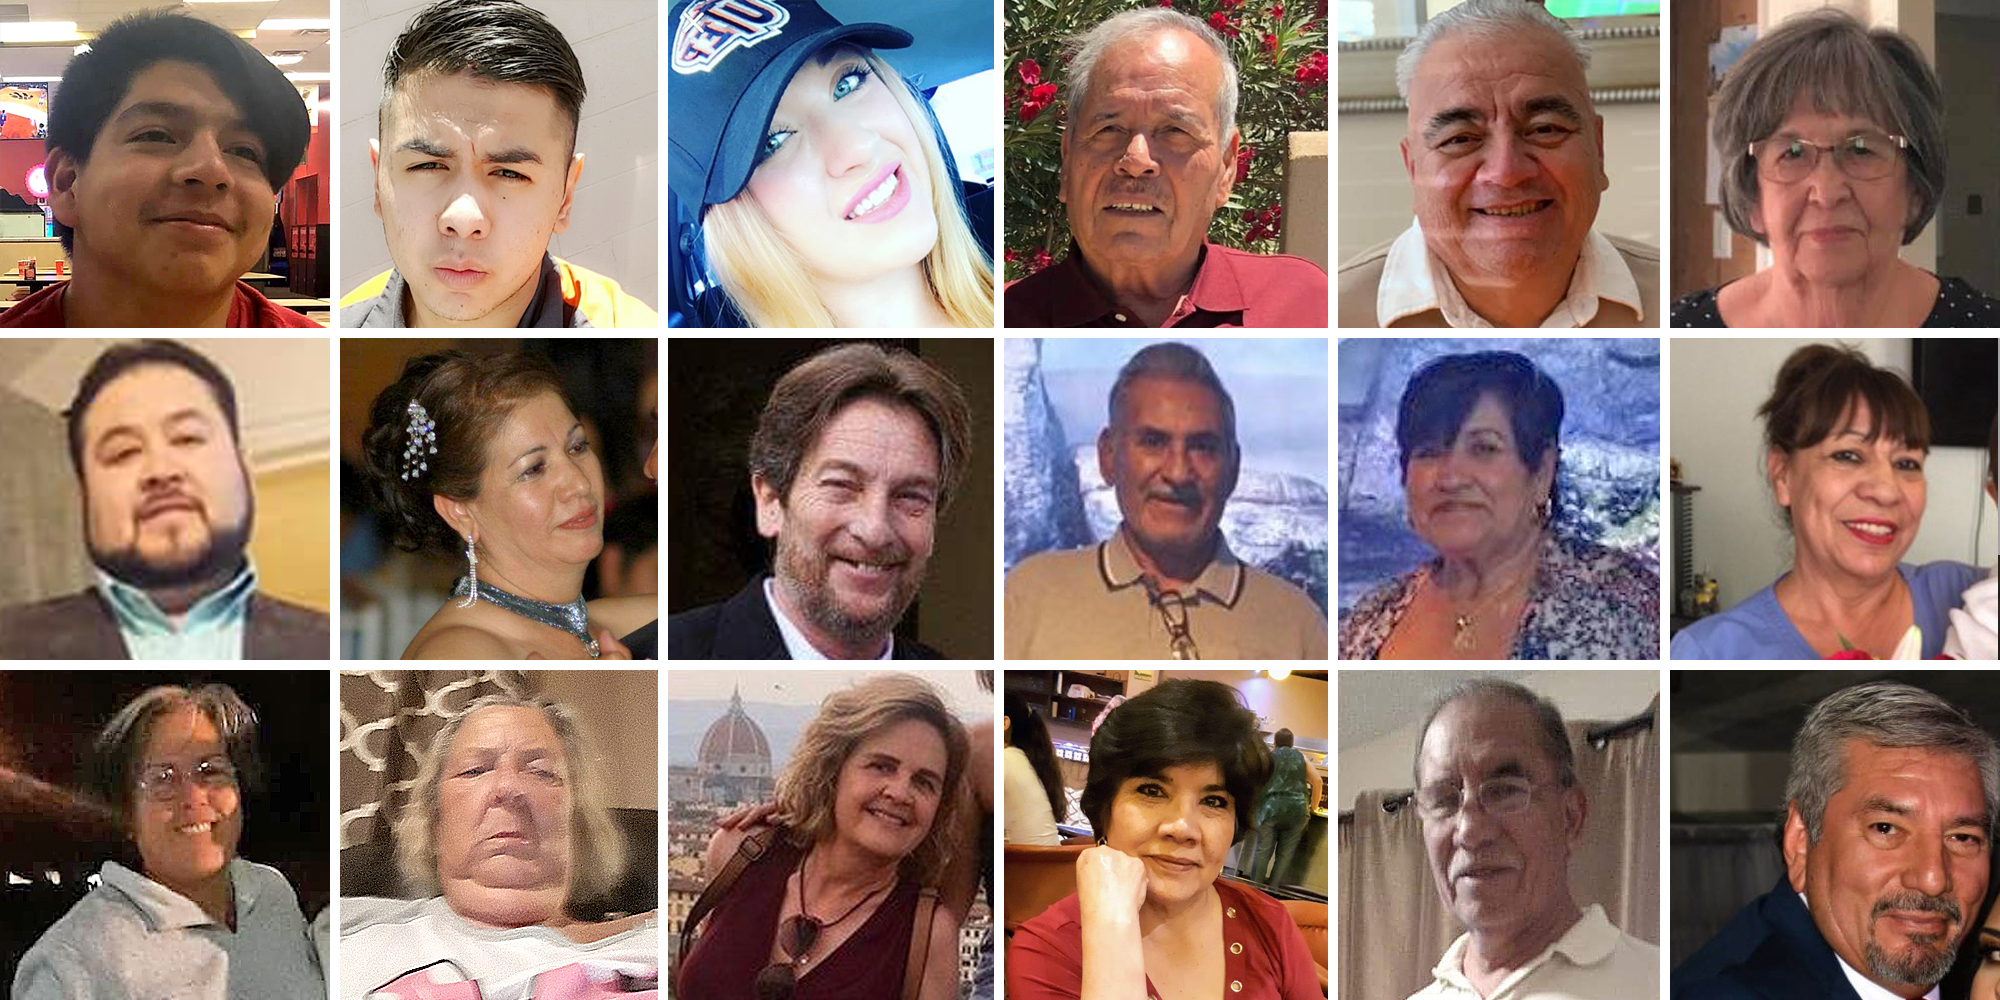 A Hero Grandfather A Teen An Army Vet These Are The Victims Of The El Paso Massacre